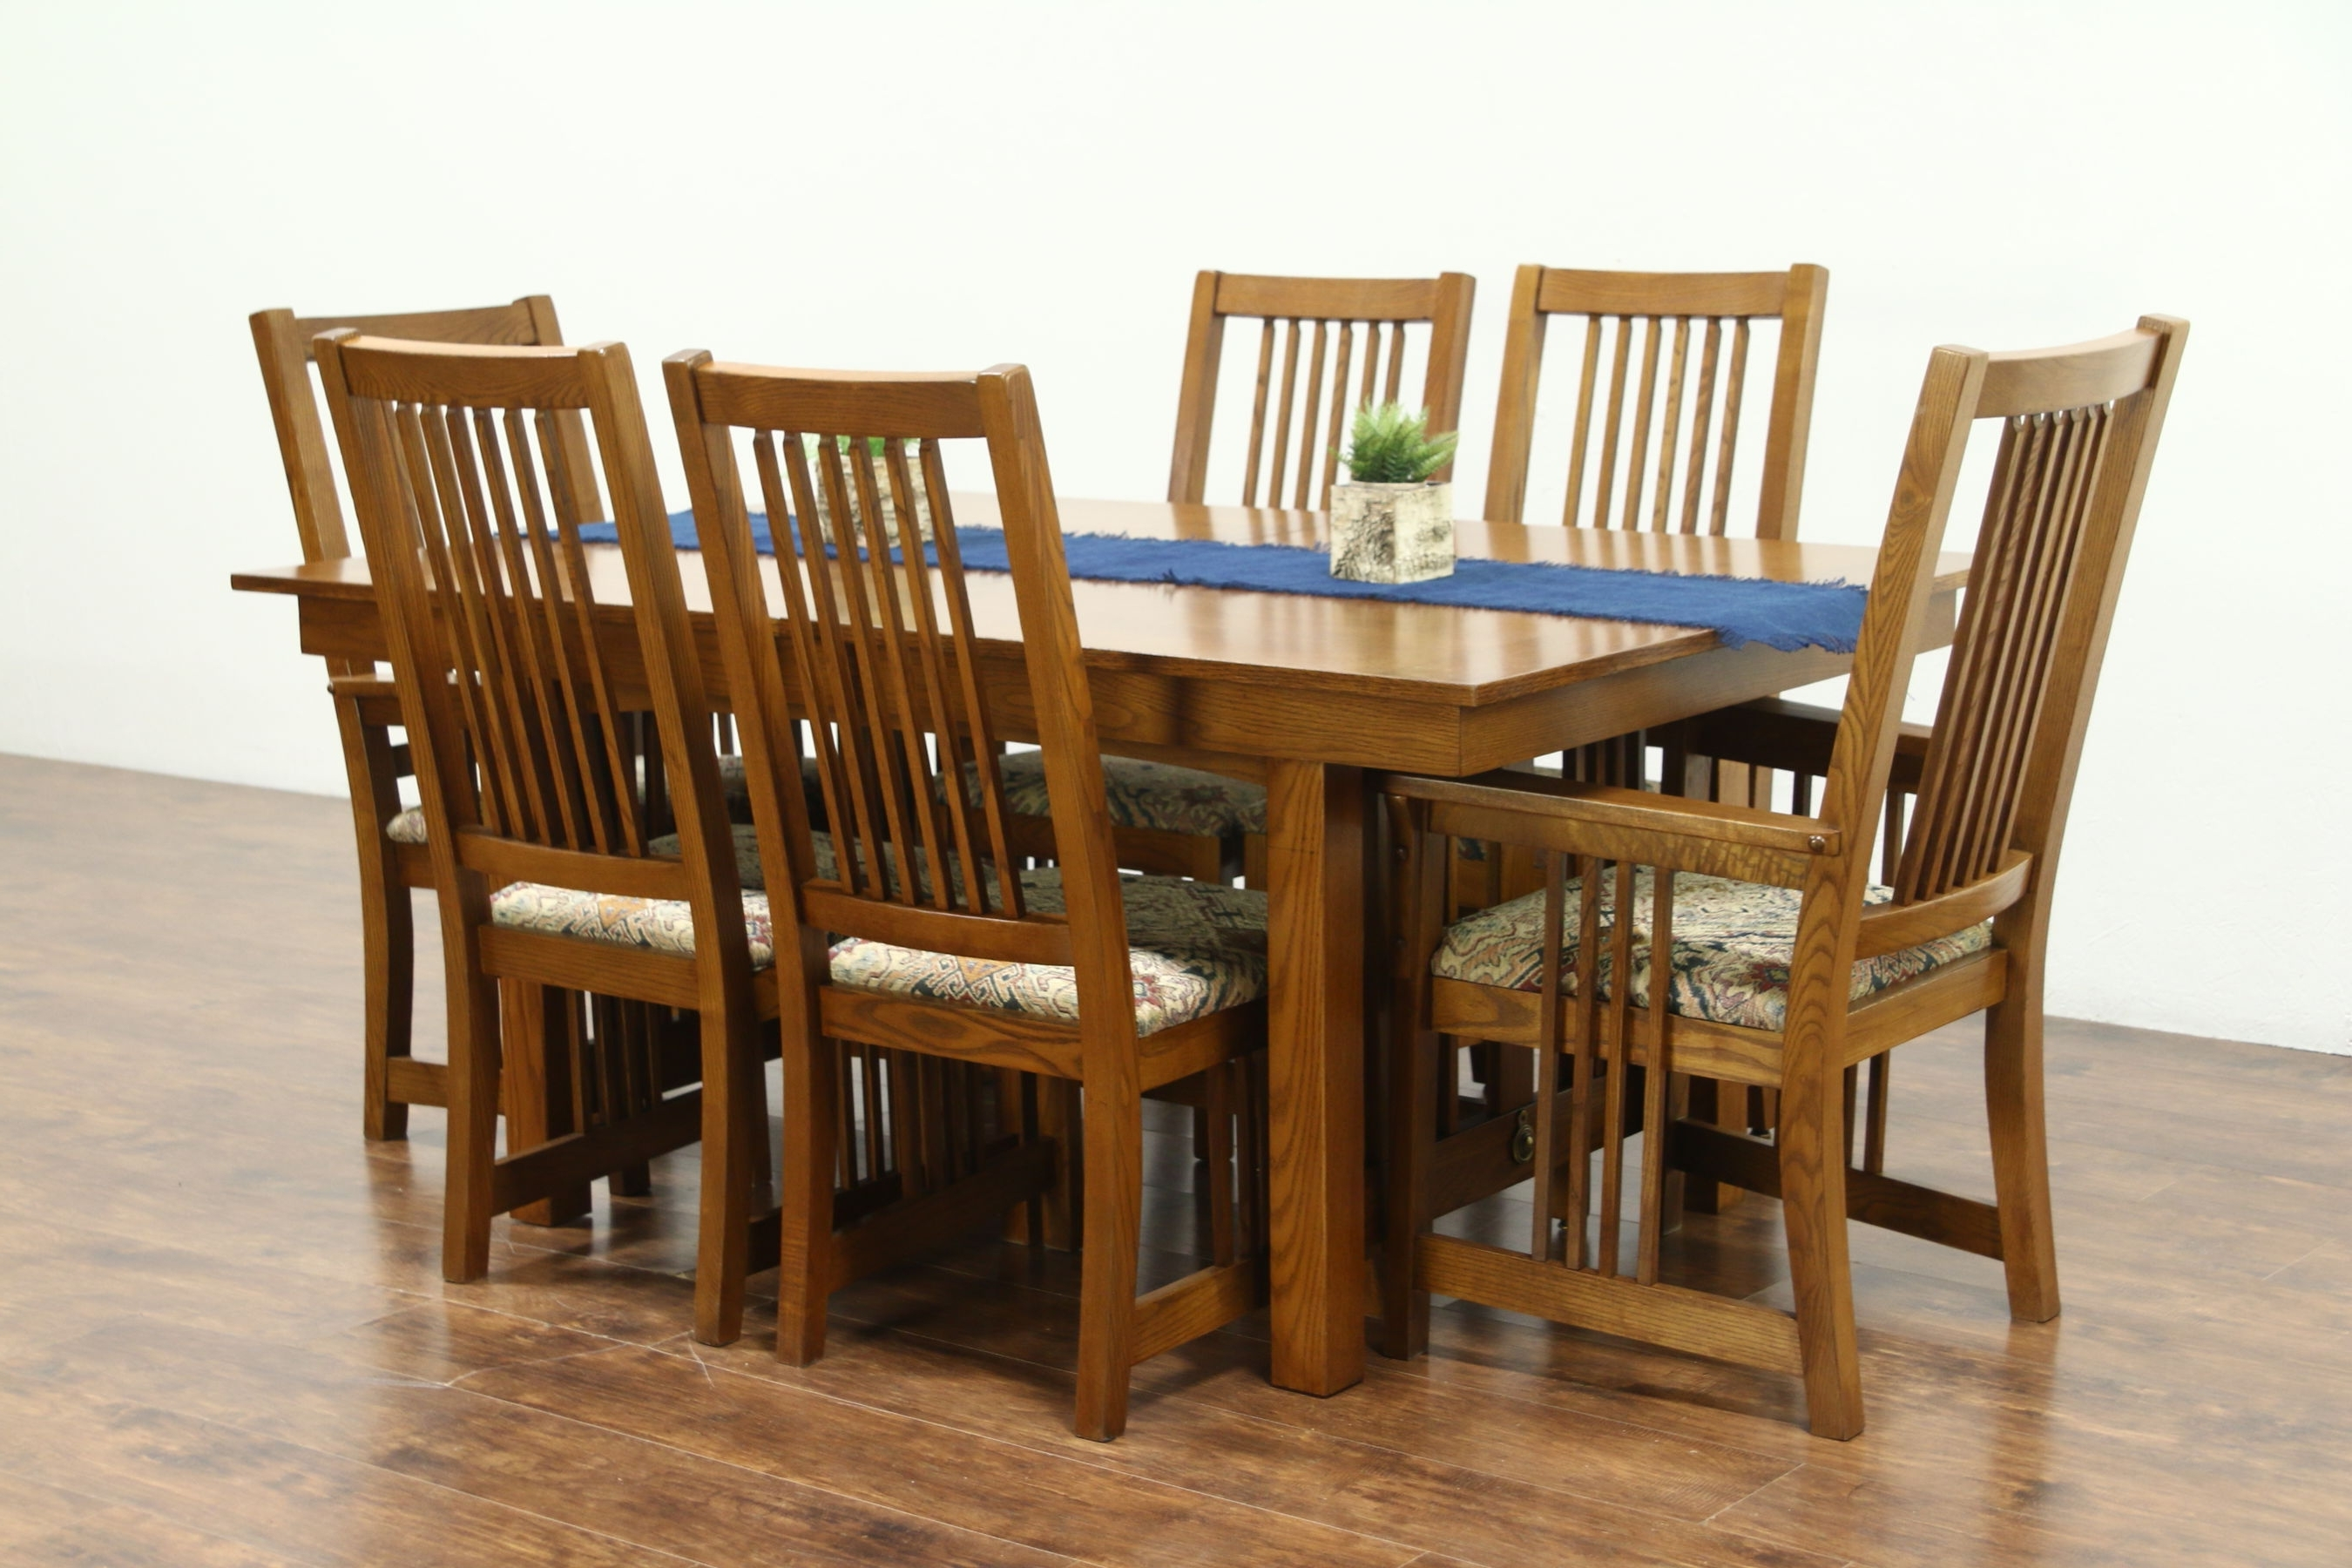 Well Liked Sold – Prairie Or Craftsman Vintage Oak Dining Set, Table, 2 Leaves Pertaining To Oak Dining Tables With 6 Chairs (View 18 of 25)